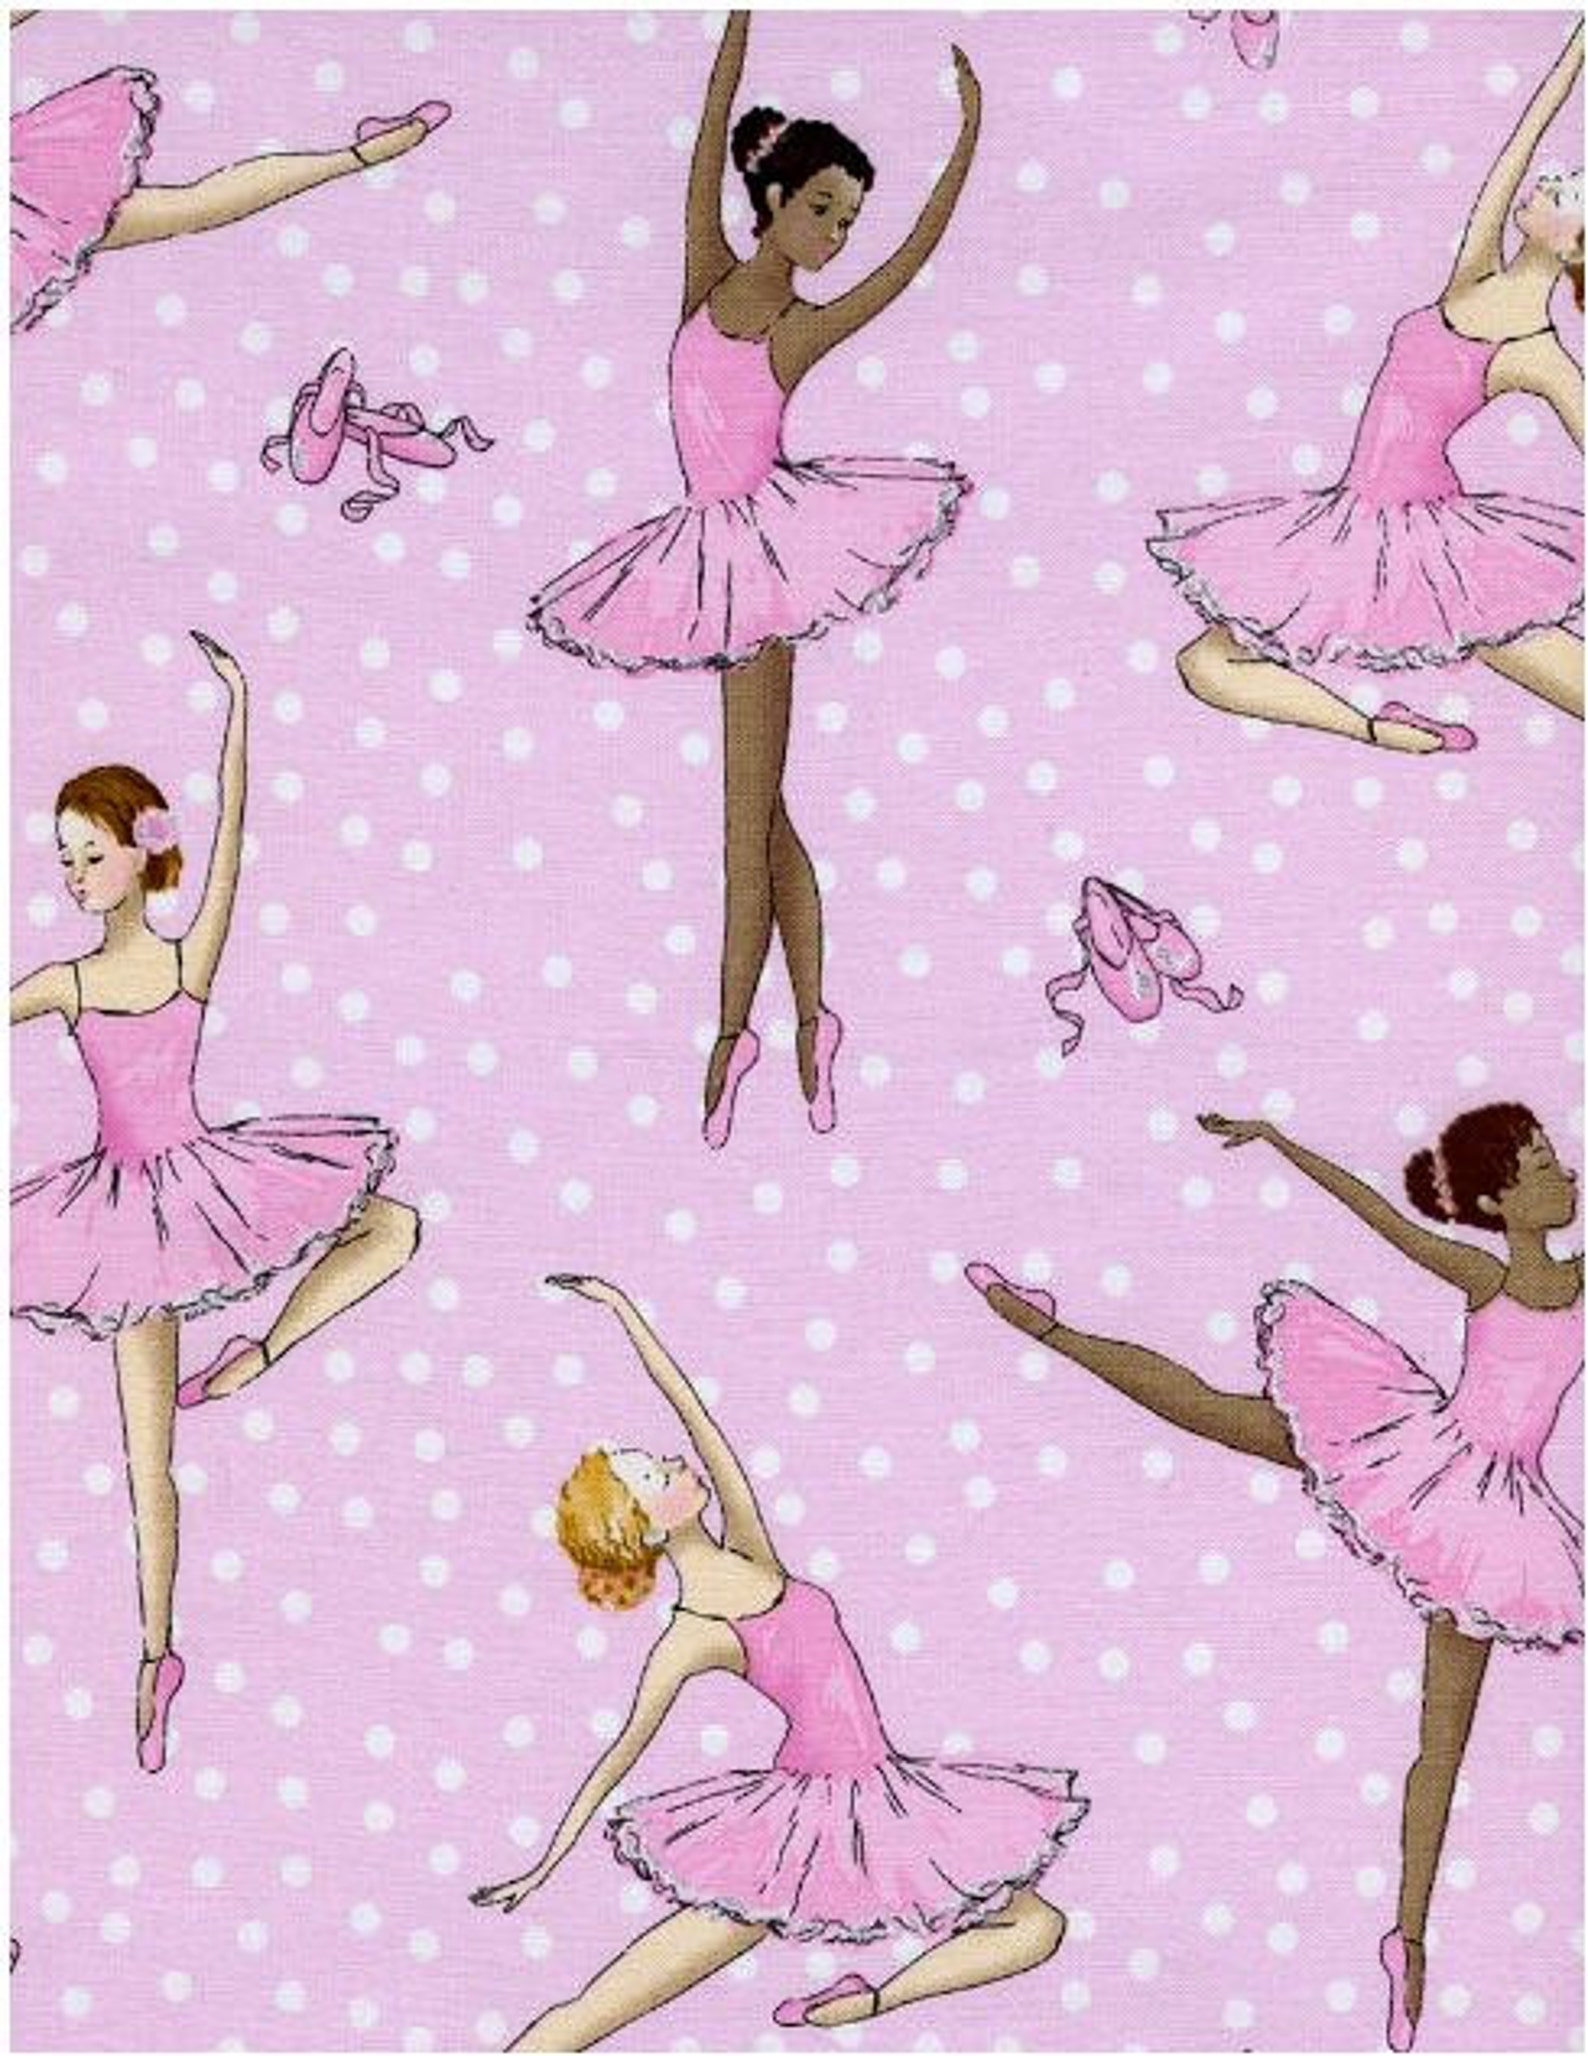 timeless treasures ballerina ballet dancers shoes on polka dots pink cotton fabric by the yard / by the half yard